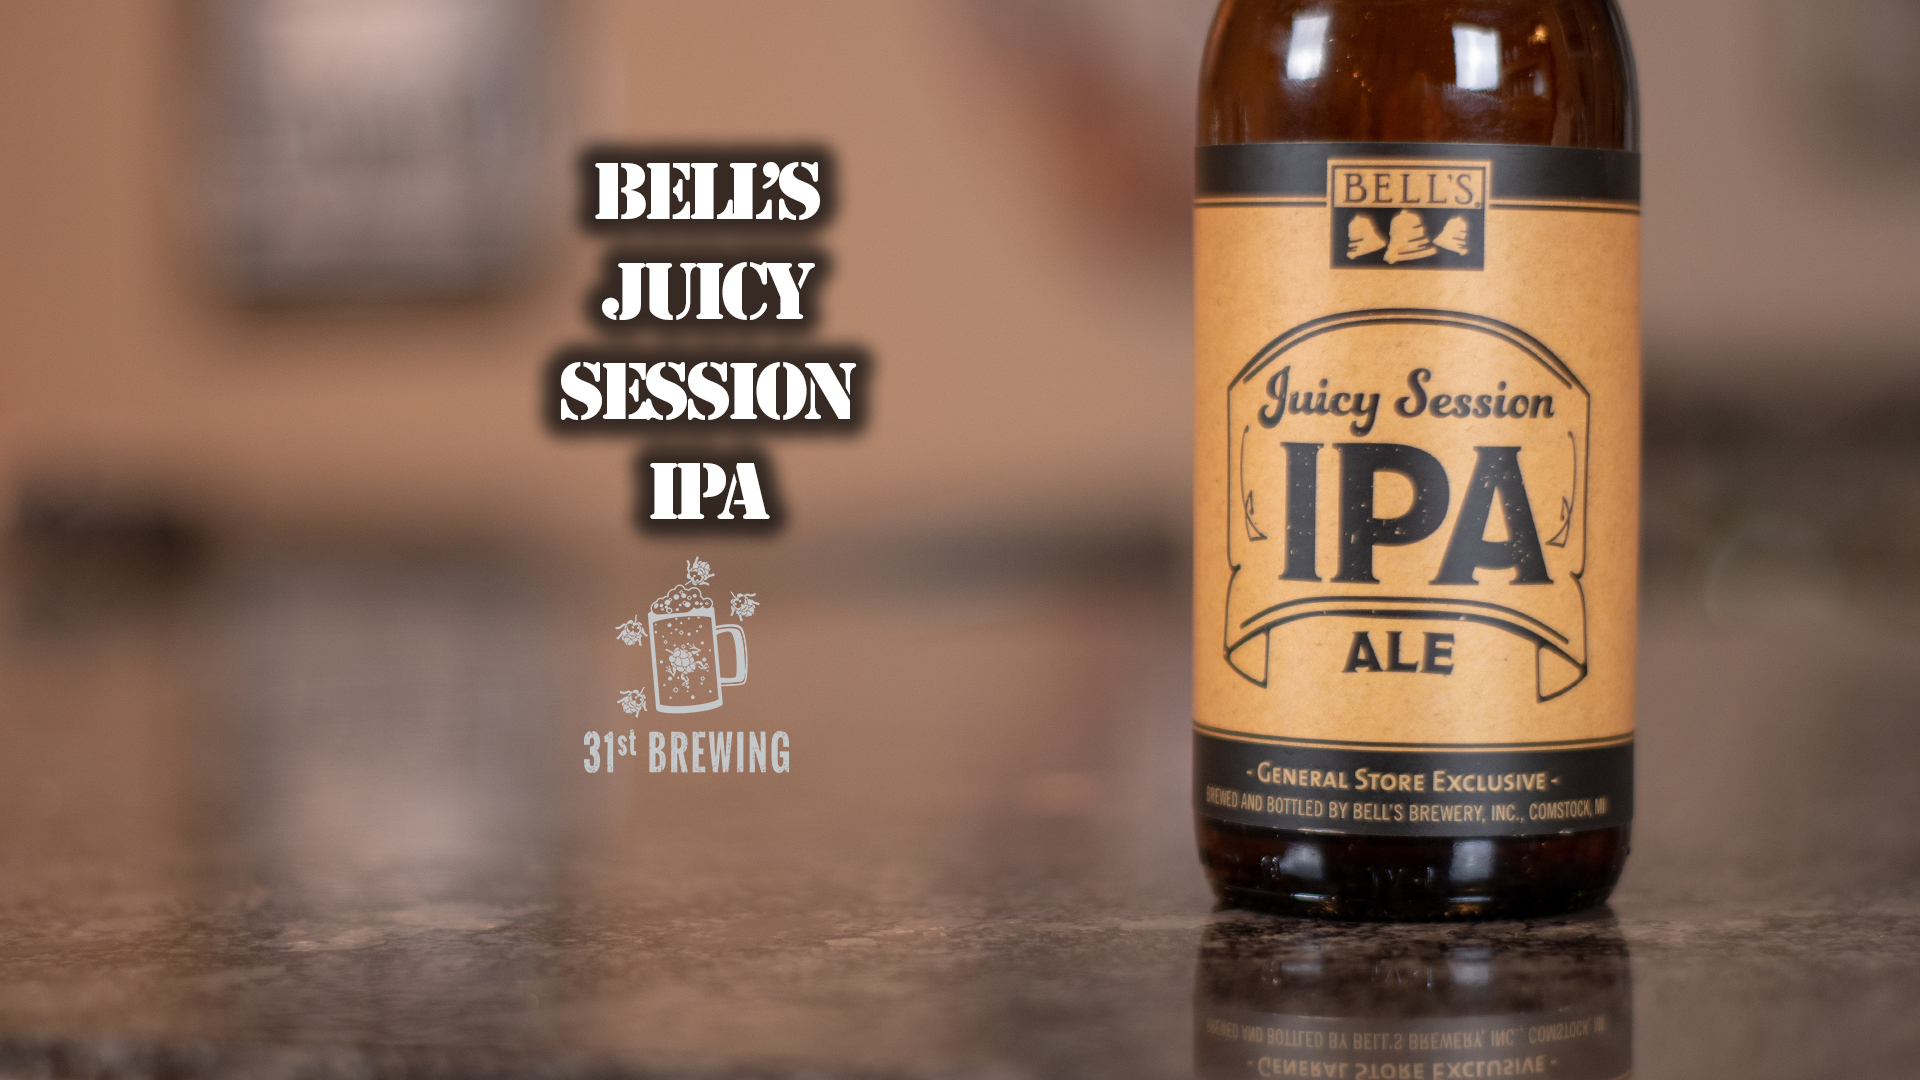 Juicy Session IPA 3.5% - Want to see the Video Review? Click on the Image